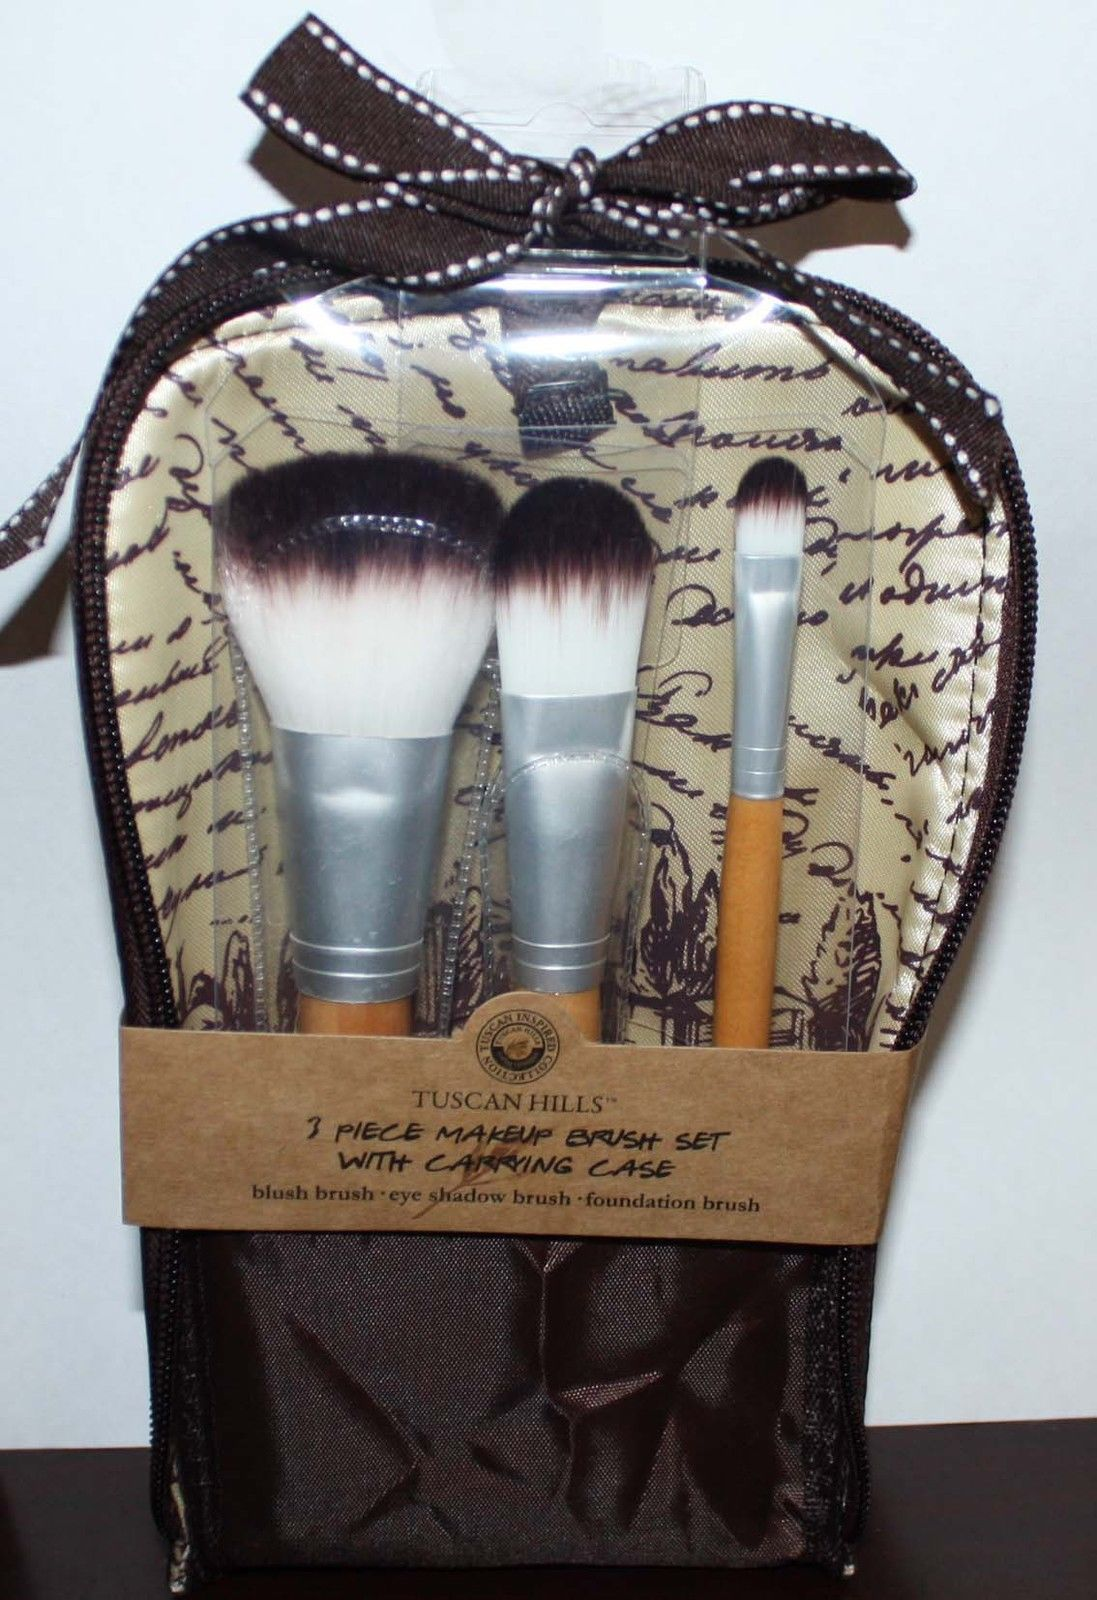 Tuscan Hills 3 Pc Makeup Brush Set With Carrying Case 09833